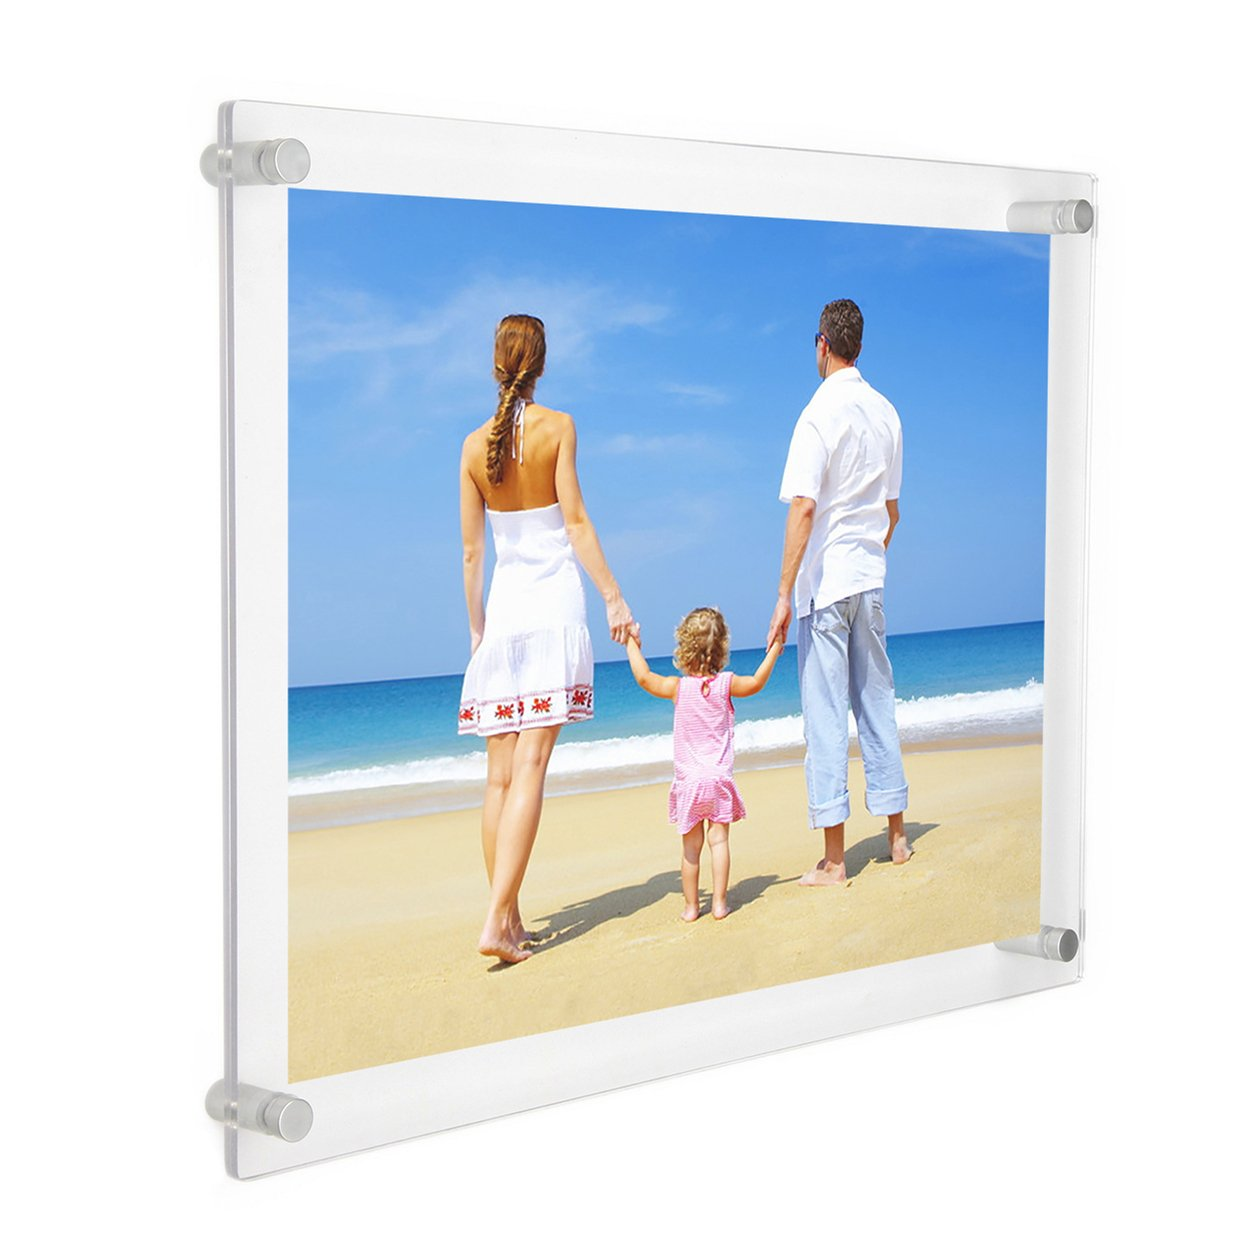 5a32a6419dd Get Quotations · NIUBEE 11x14 Clear Acrylic Wall Mount Floating Frameless  Picture Frame for Degree Certificate Photo Frames-